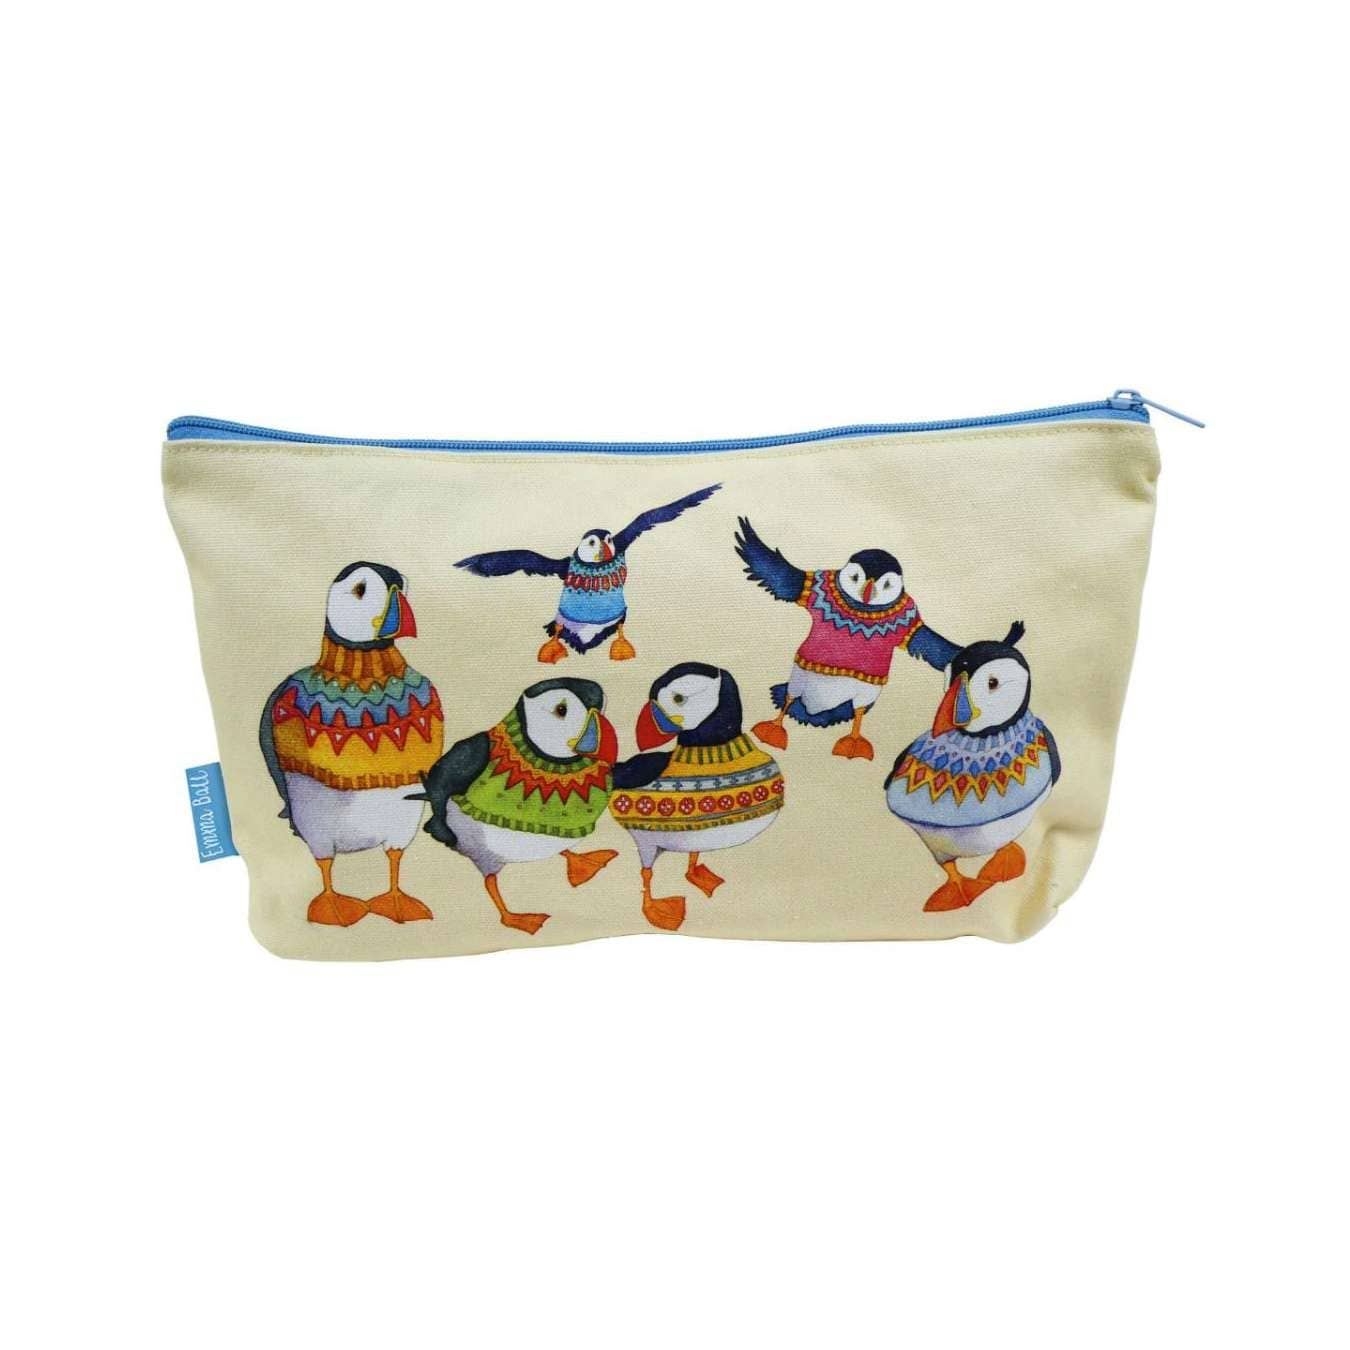 Emma Ball - Woolly Puffins Zipped Pouch | Yarn Worx